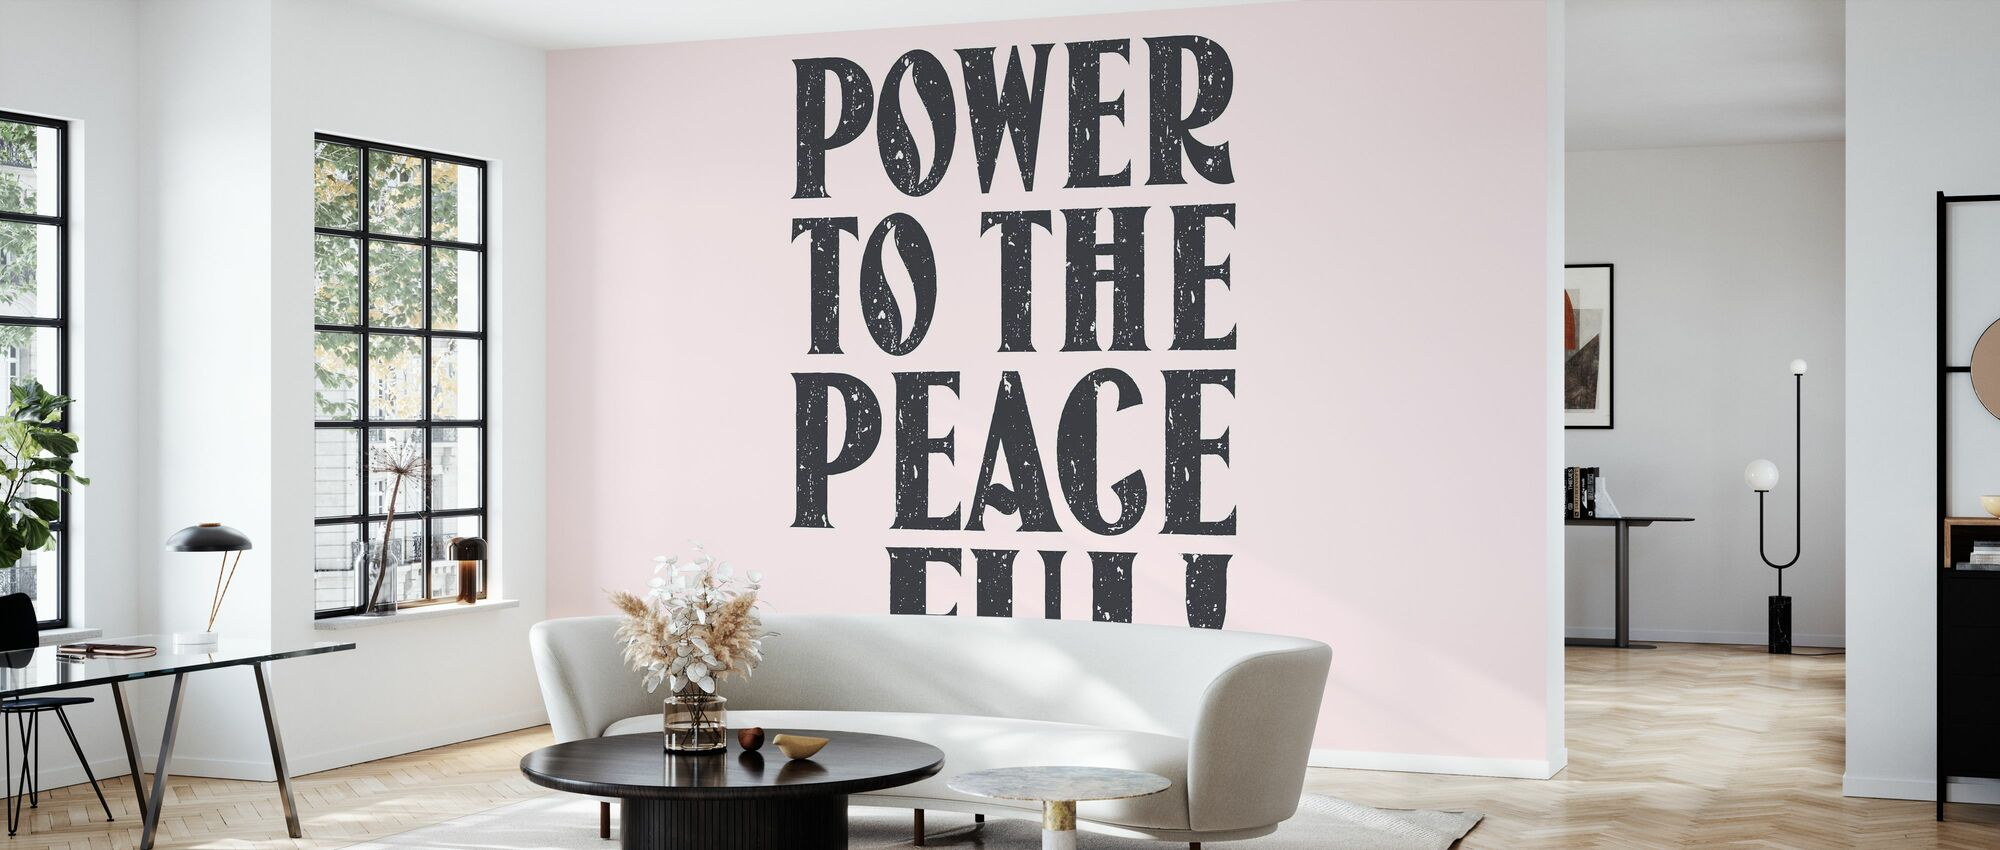 Power to the Peaceful - Wallpaper - Living Room